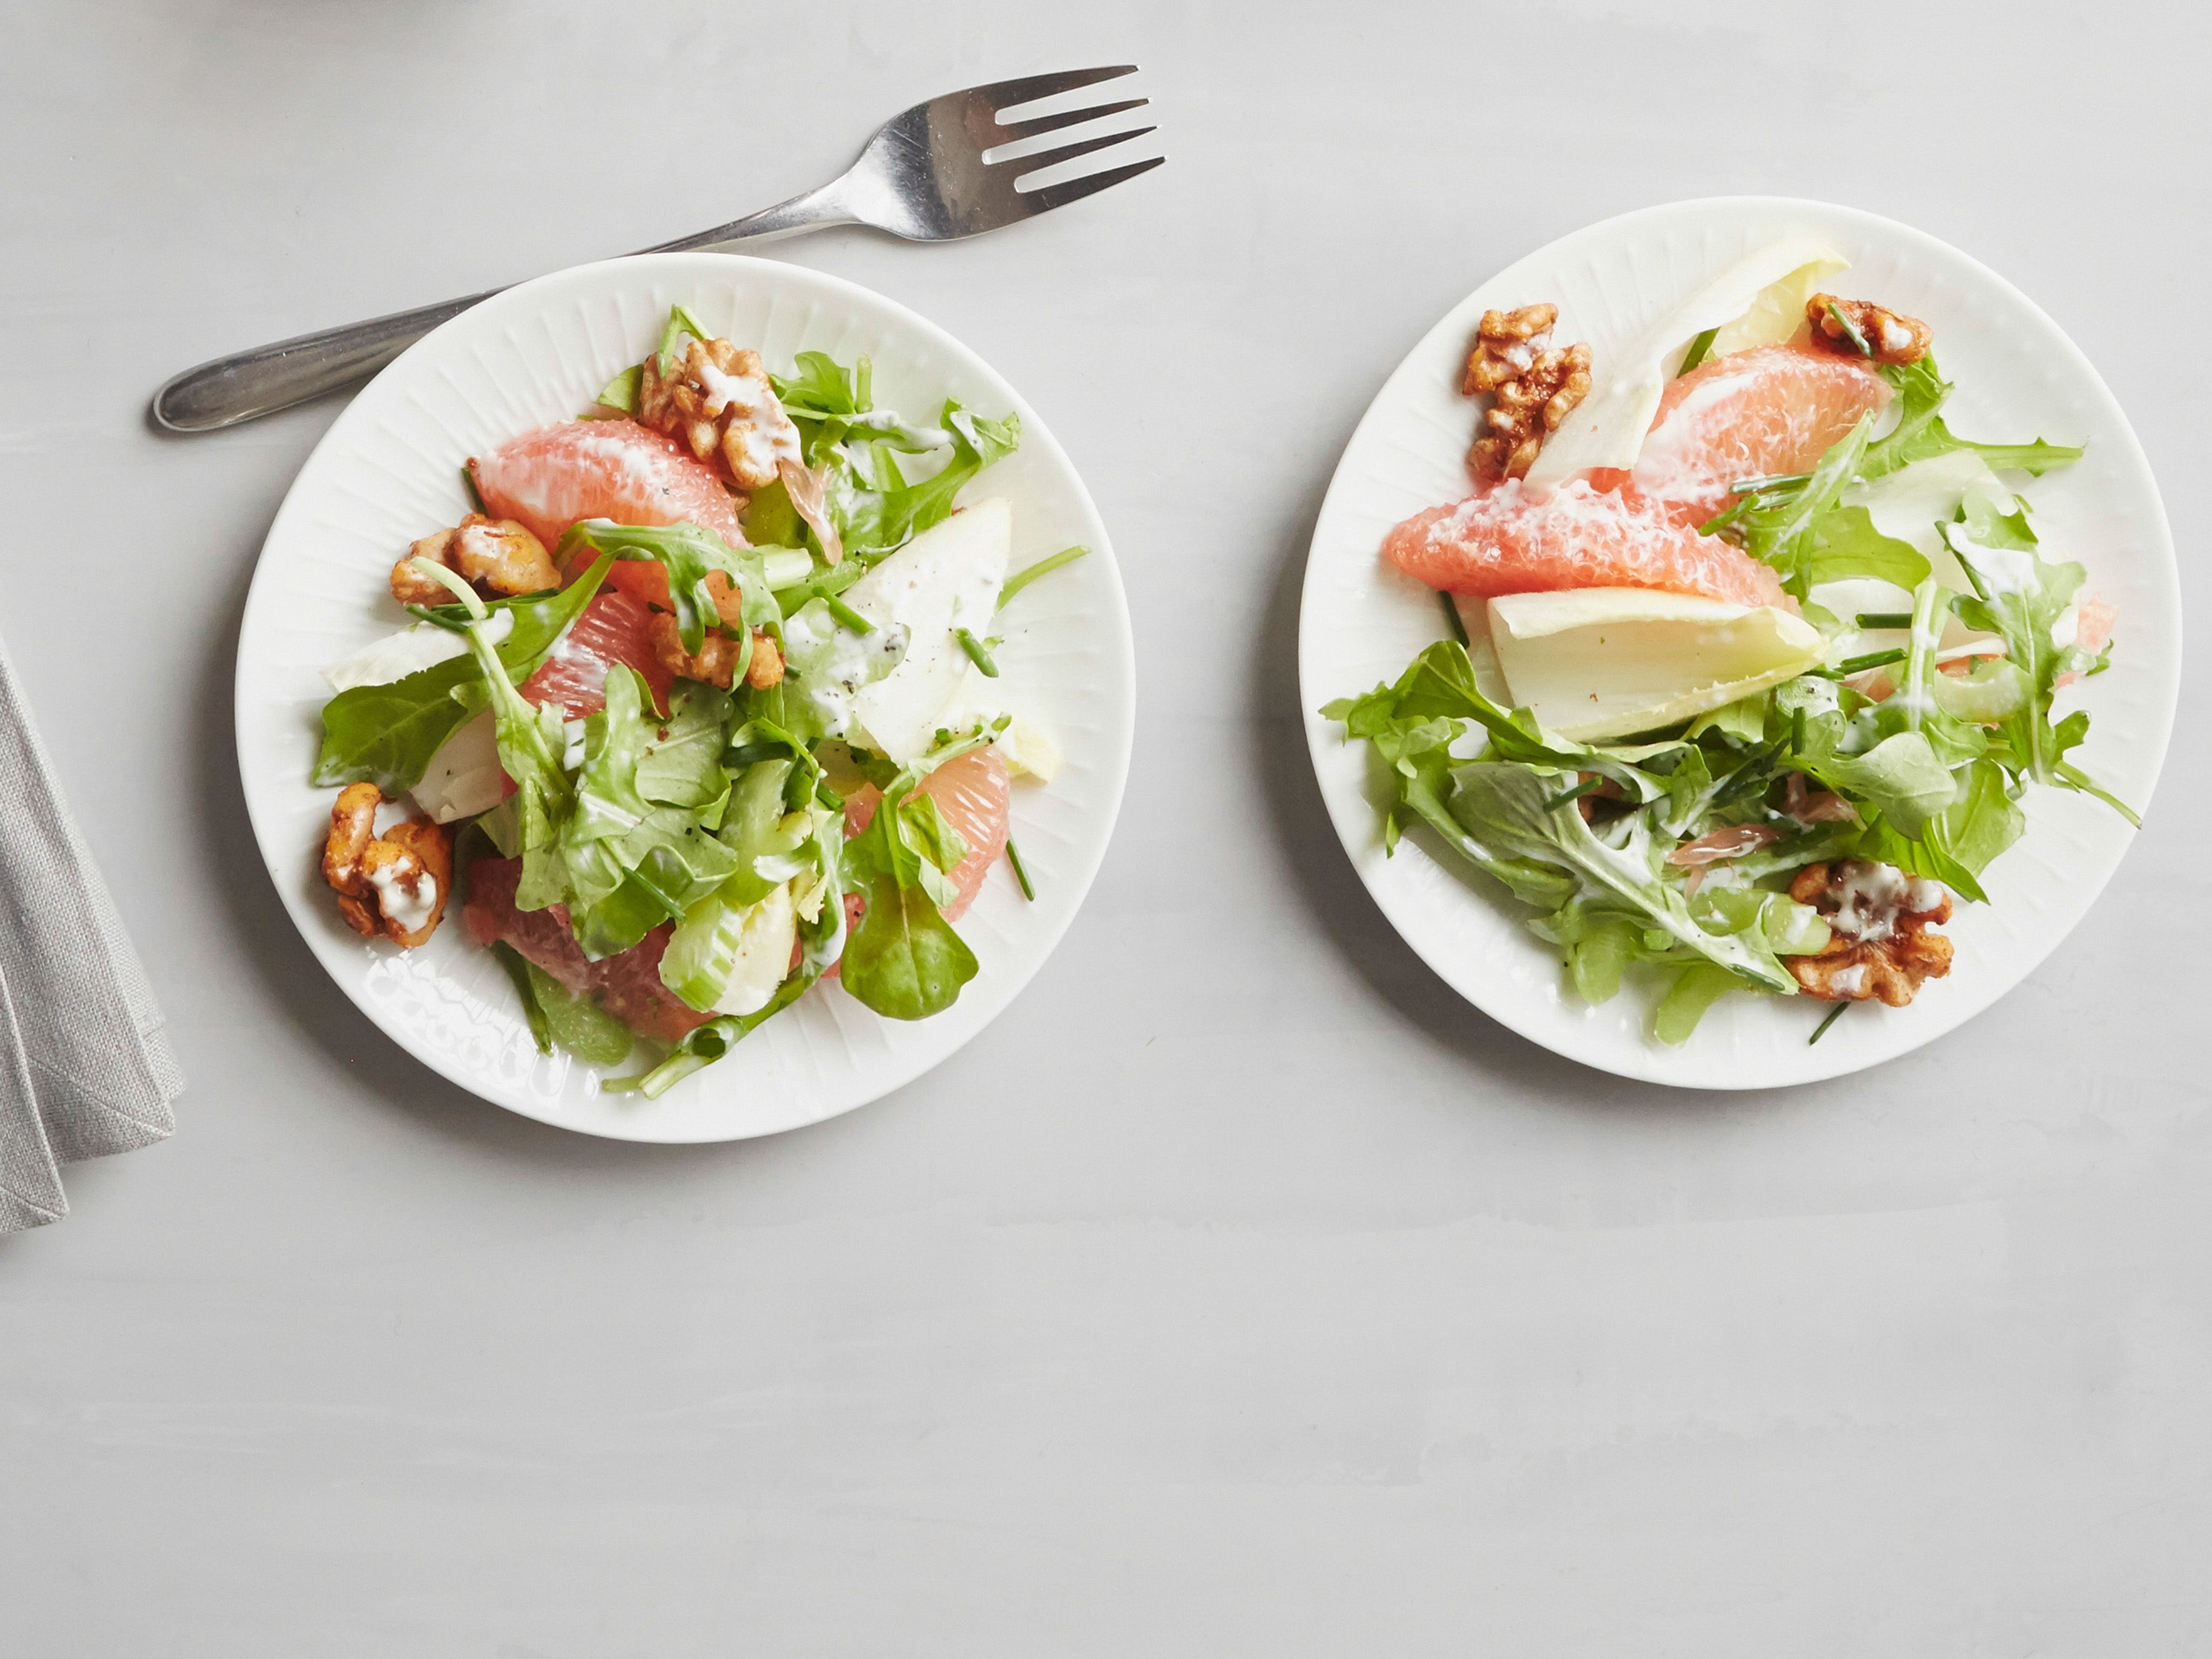 Check out grapefruit arugula salad its so easy to make arugula grapefruit recipes grapefruit arugula salad recipe food network forumfinder Gallery